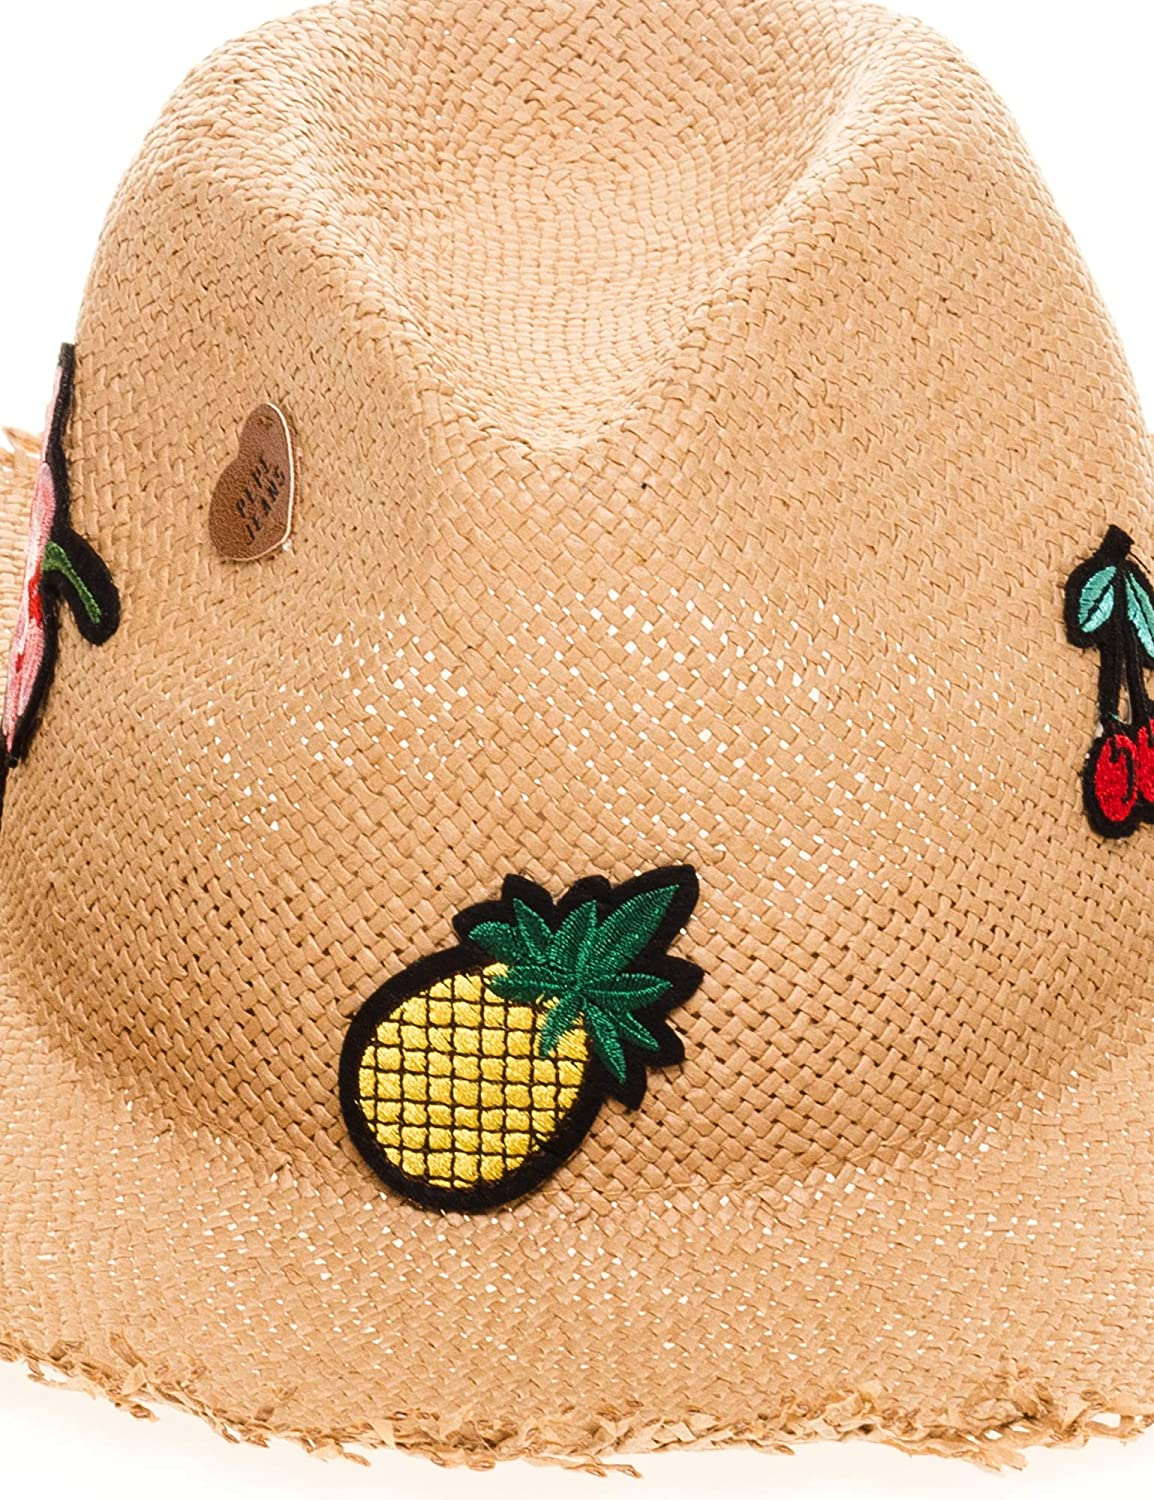 Pepe Jeans Patch Kids Color Straw Hat